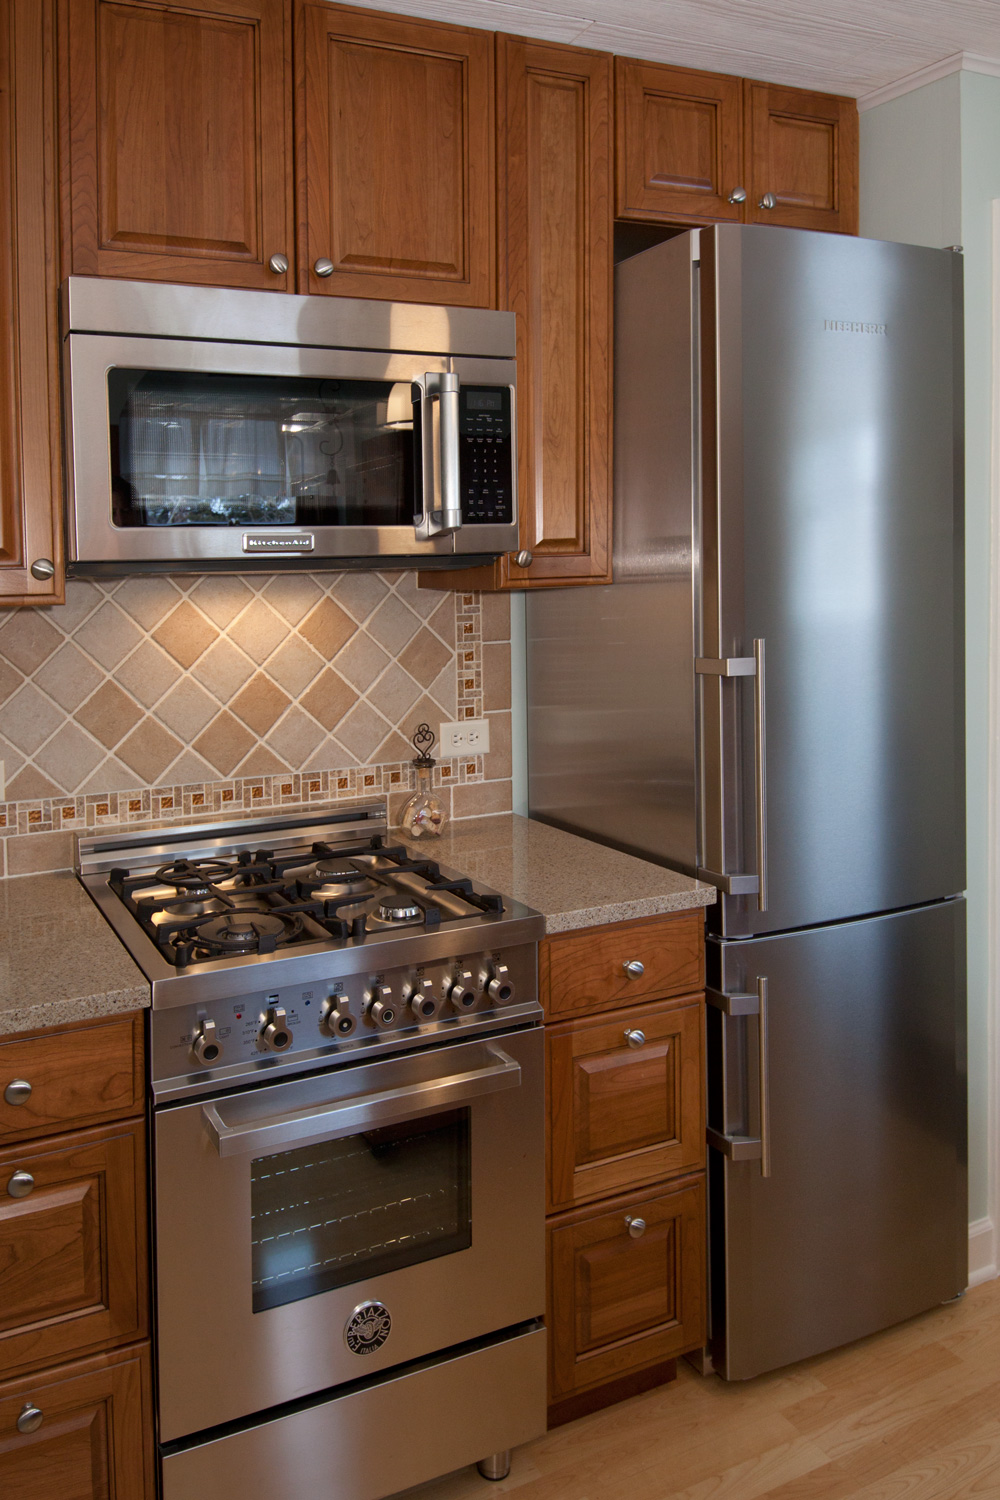 small kitchen elmwood park kitchen remodel ideas OVERVIEW